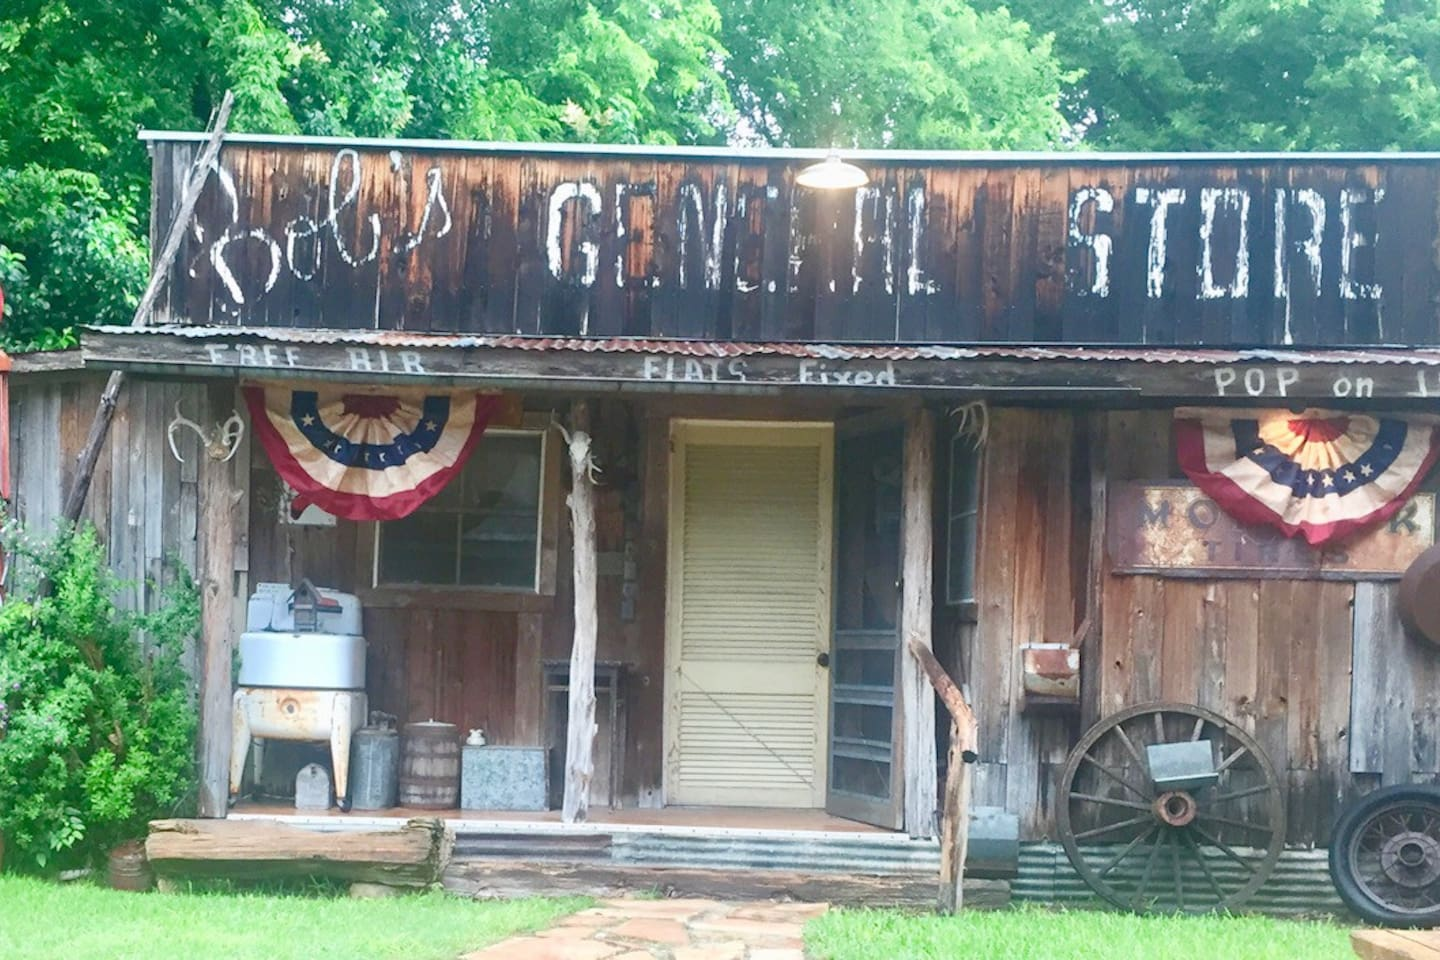 Your quarters for the evening...The General Store is not just a room, it's an experience.